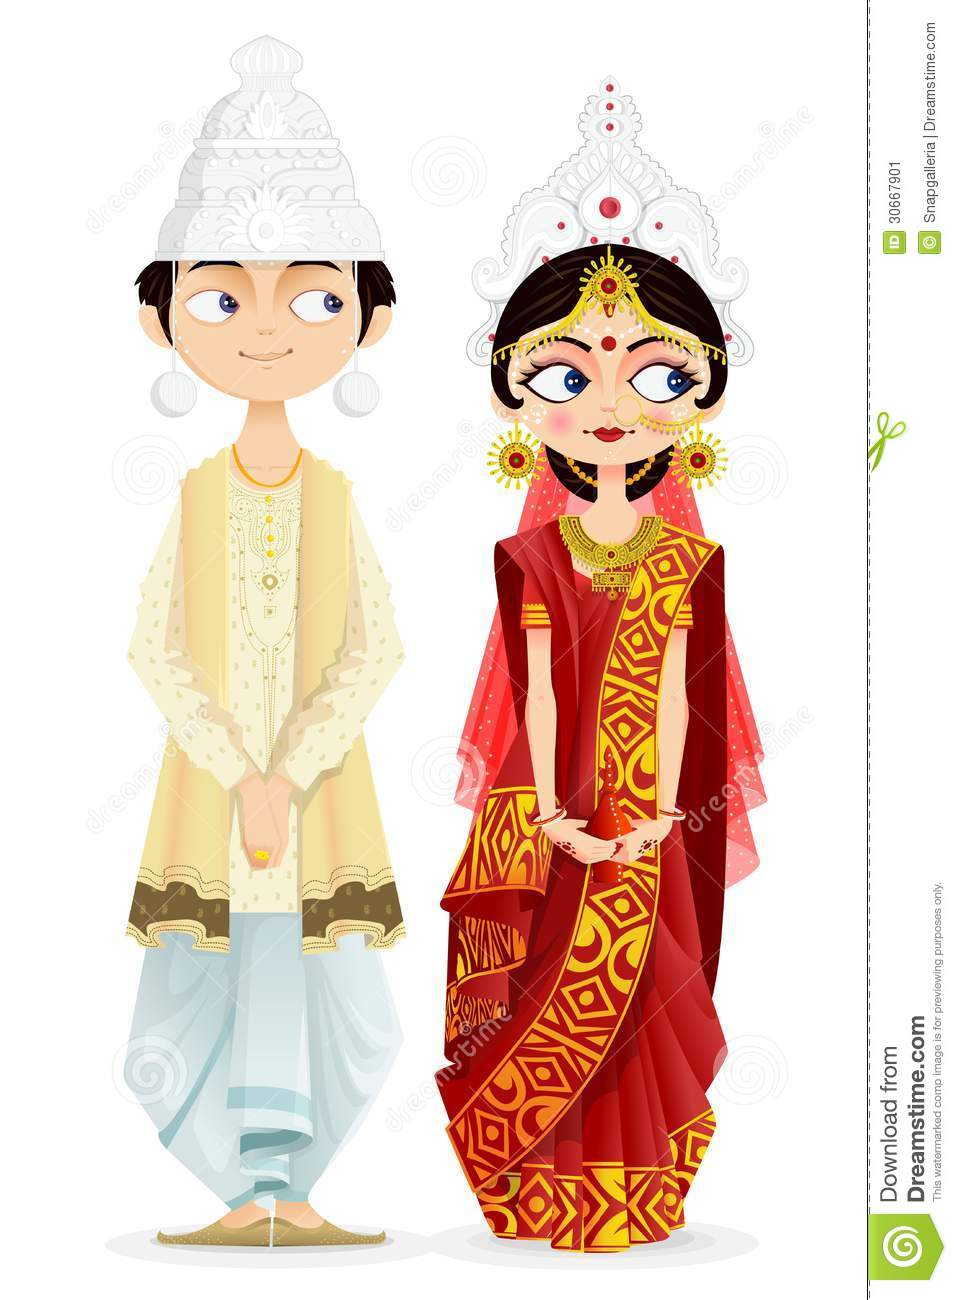 bengali wedding couple easy to edit vector illustration 30667901 - Wedding Reception Rituals